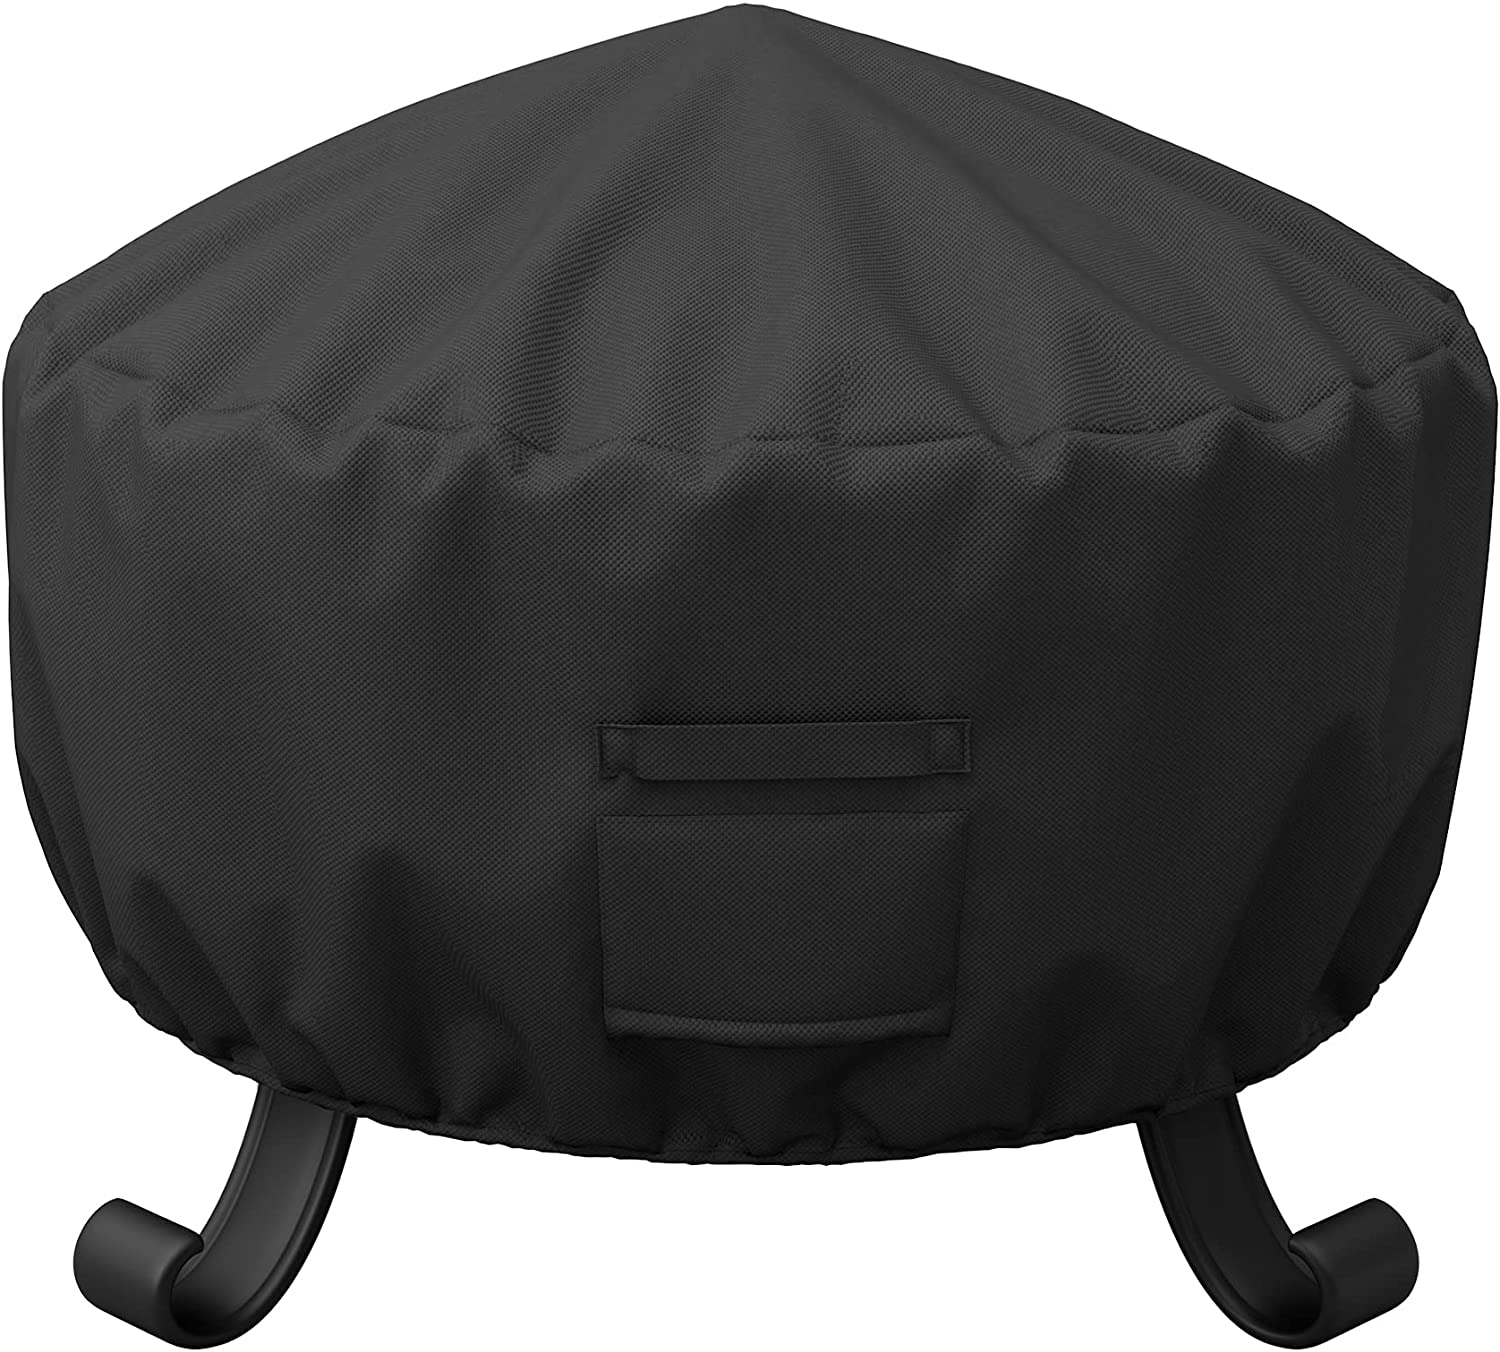 SHINESTAR 36 Inch Round Fire Very popular Pit 32-35'' Surprise price Burnin Cover Fits Wood